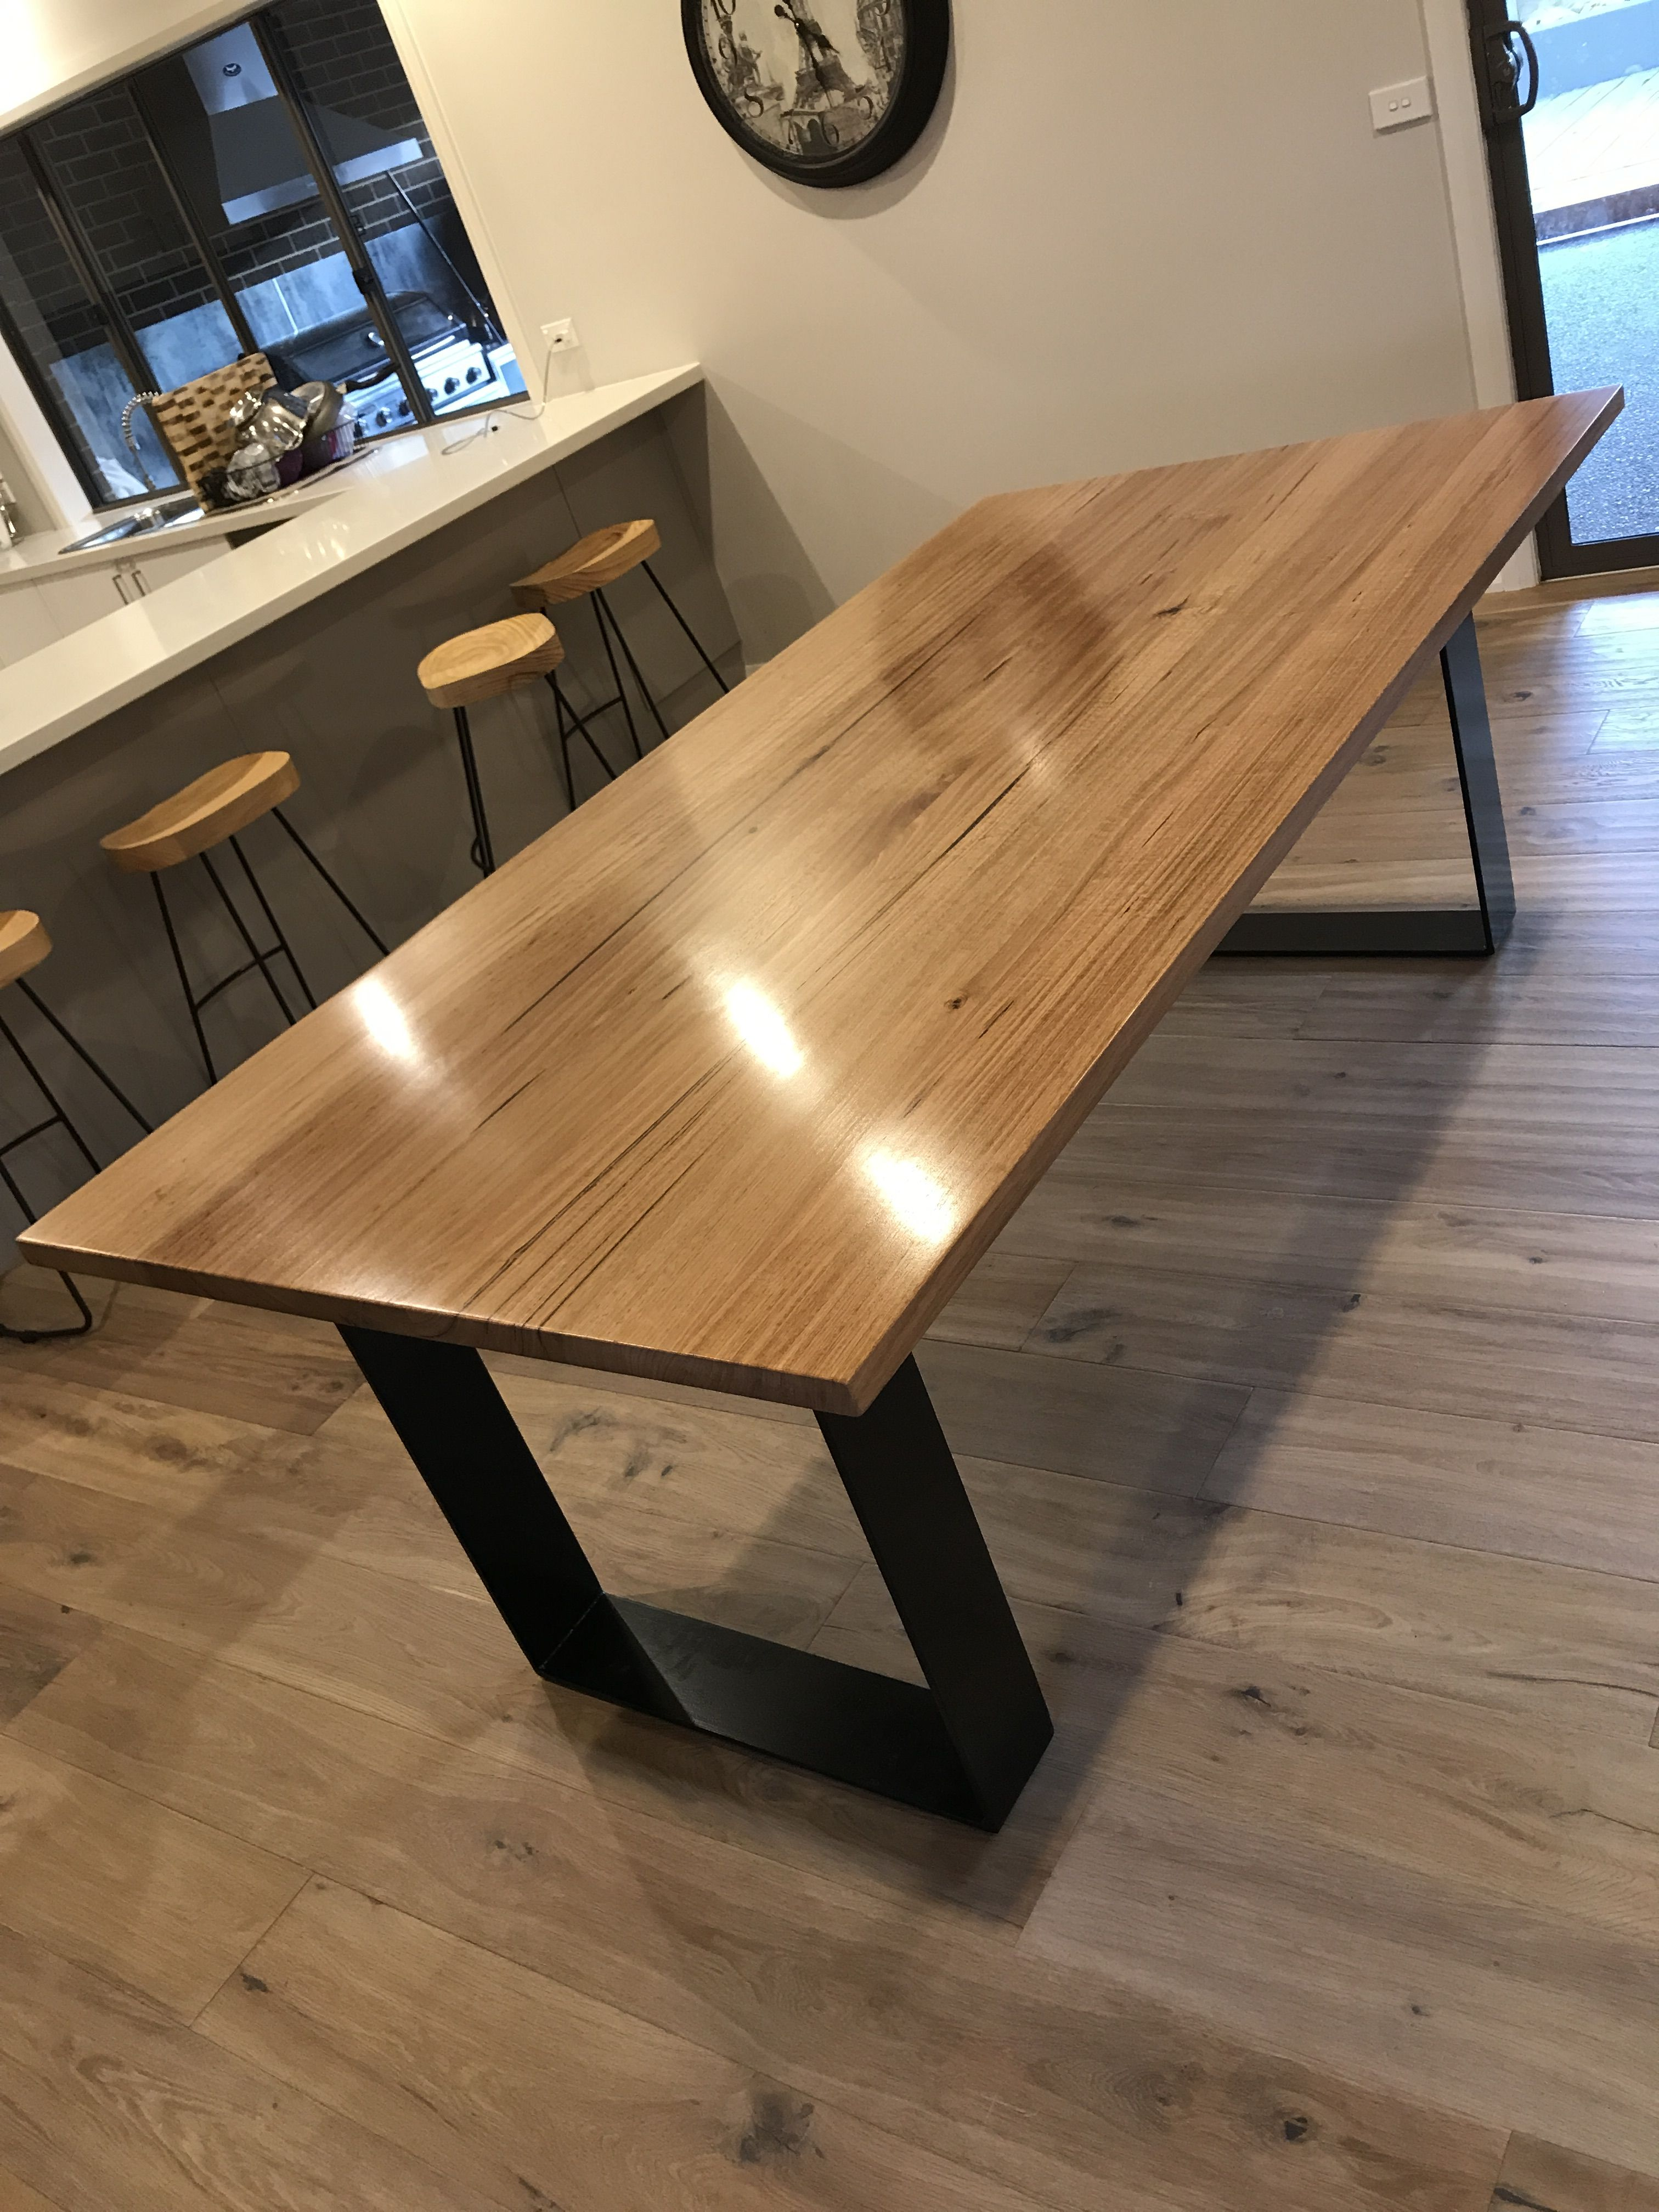 Timber Table Legs Messmate Timber Dining Table Black Metal Legs Timber Dining